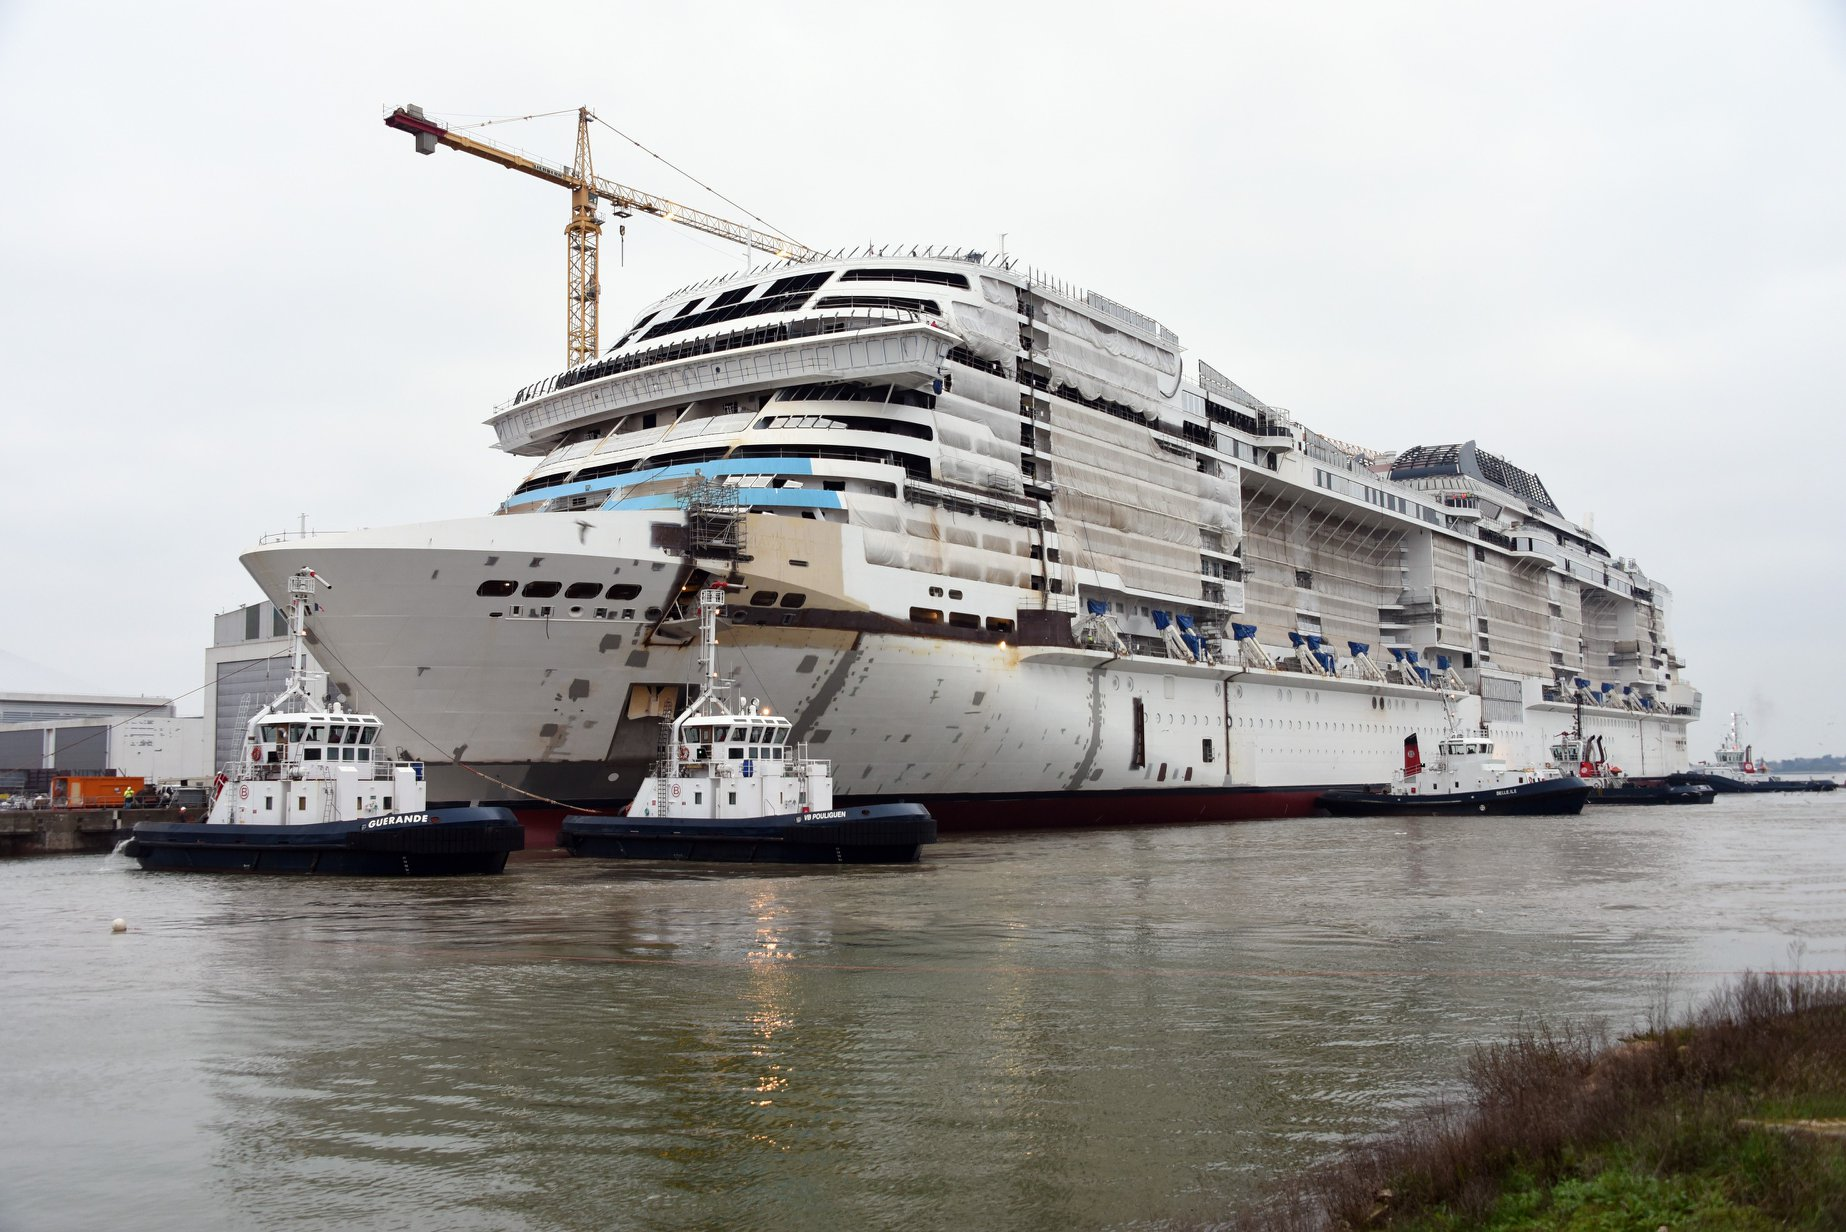 MSC Grandiosa Touches Water for the First Time | CruiseBe